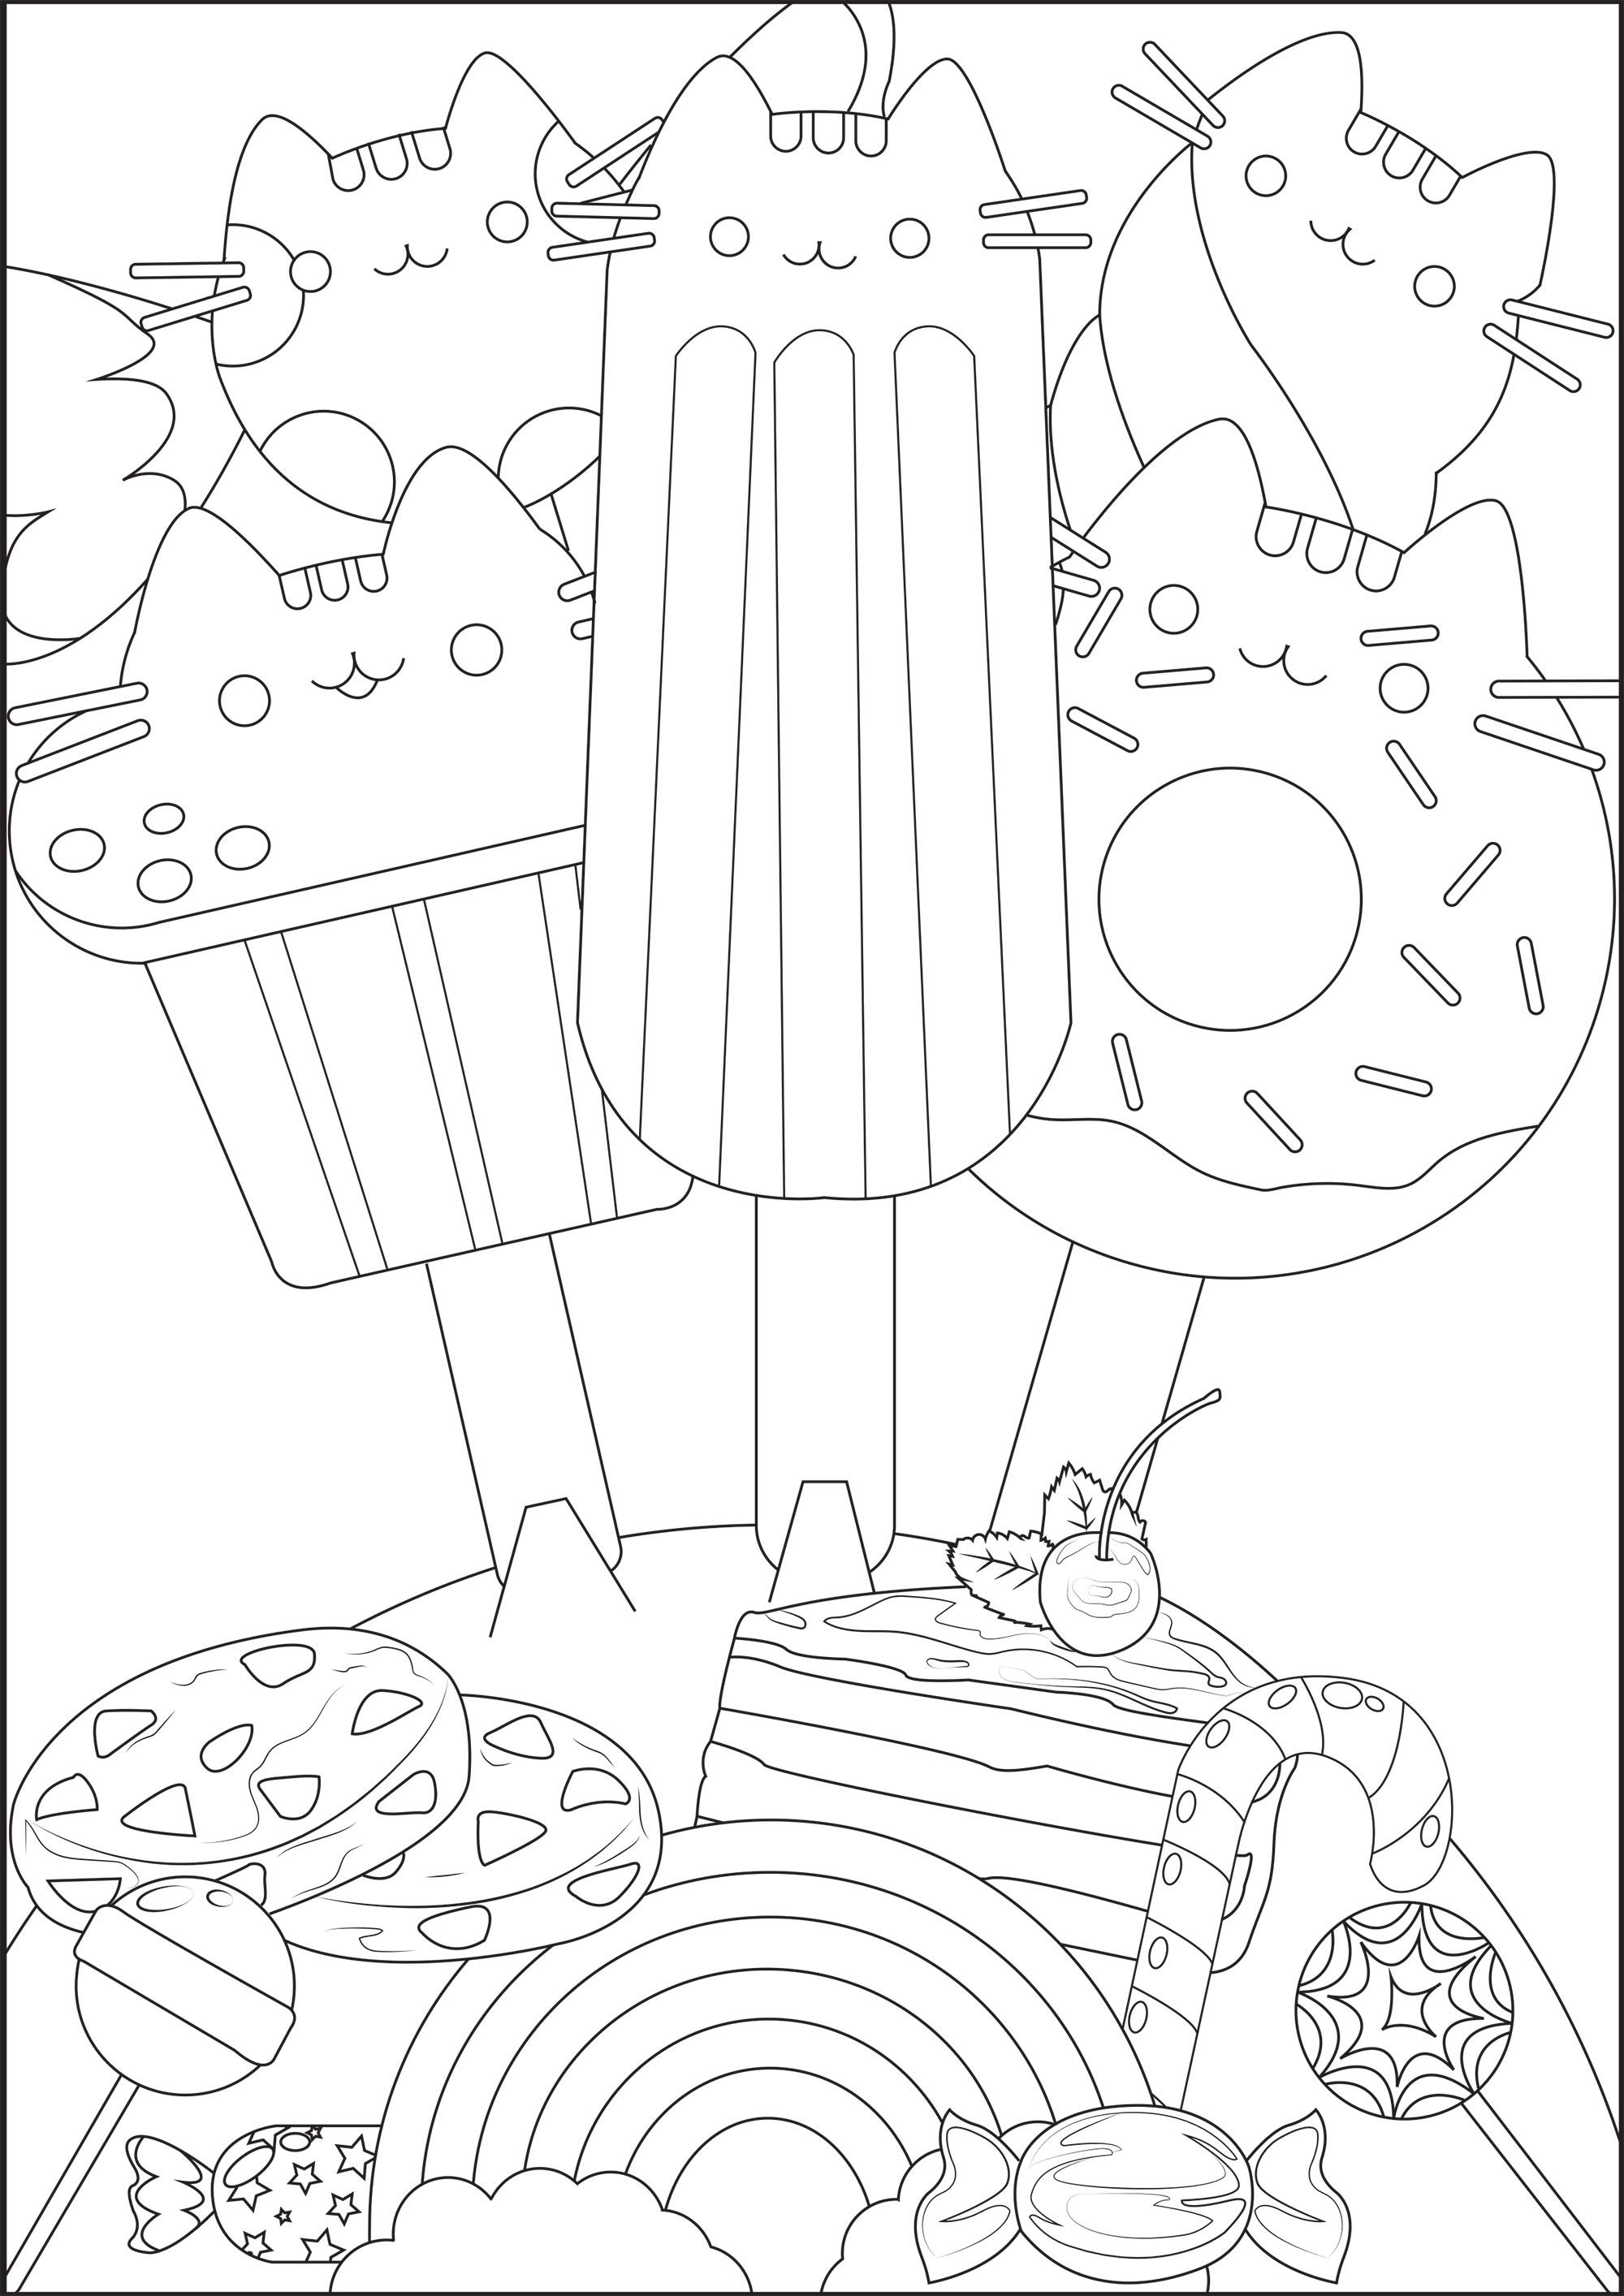 Delicious Ice Creams With Pusheen S Head Cakes And Candy From The Gallery Doodling Doodle Ice Cream Coloring Pages Coloring Pages Pusheen Coloring Pages